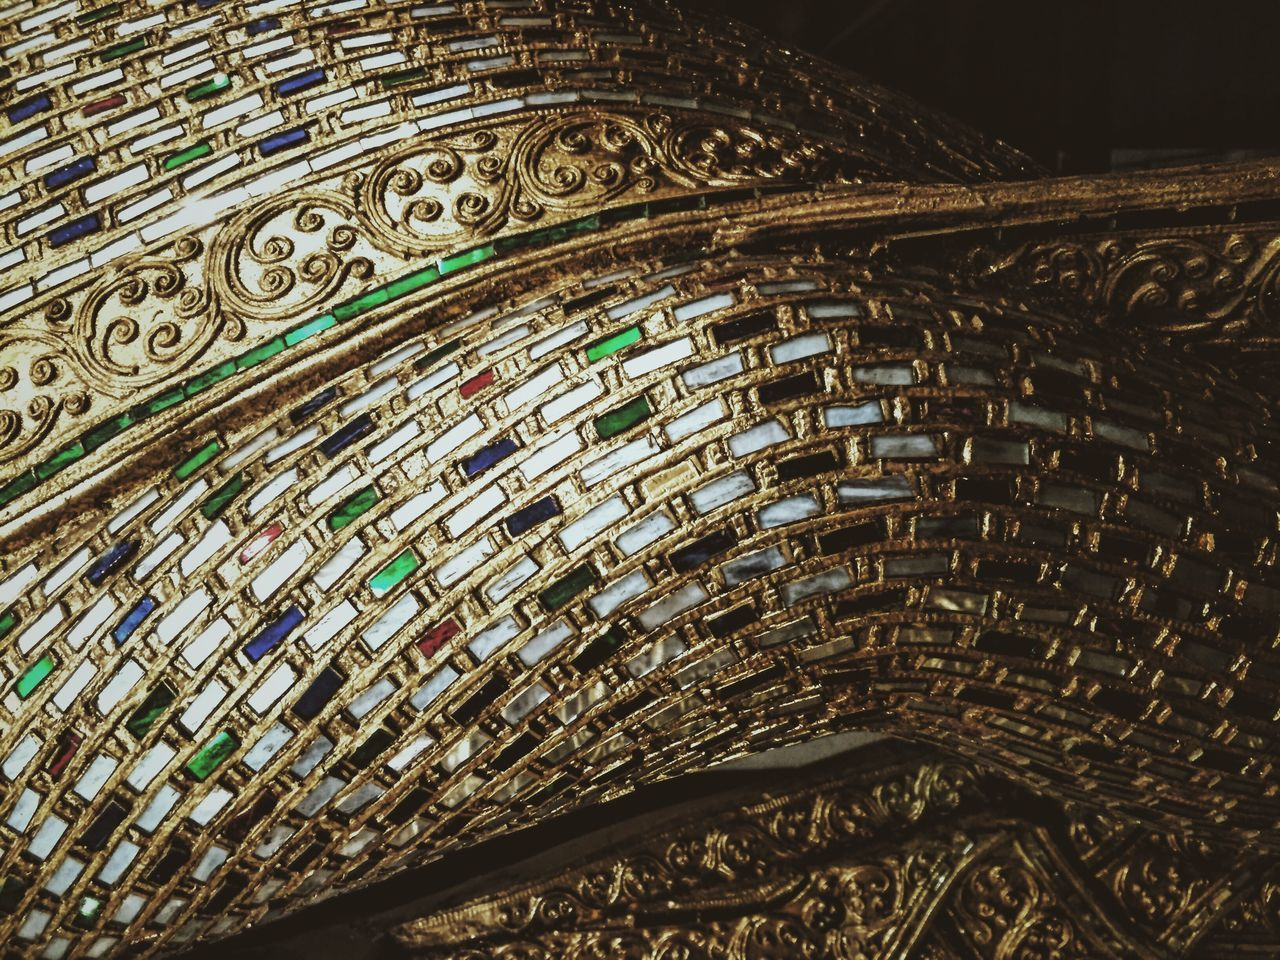 pattern, no people, art and craft, architecture, creativity, built structure, design, indoors, close-up, craft, the past, history, backgrounds, low angle view, ornate, full frame, day, religion